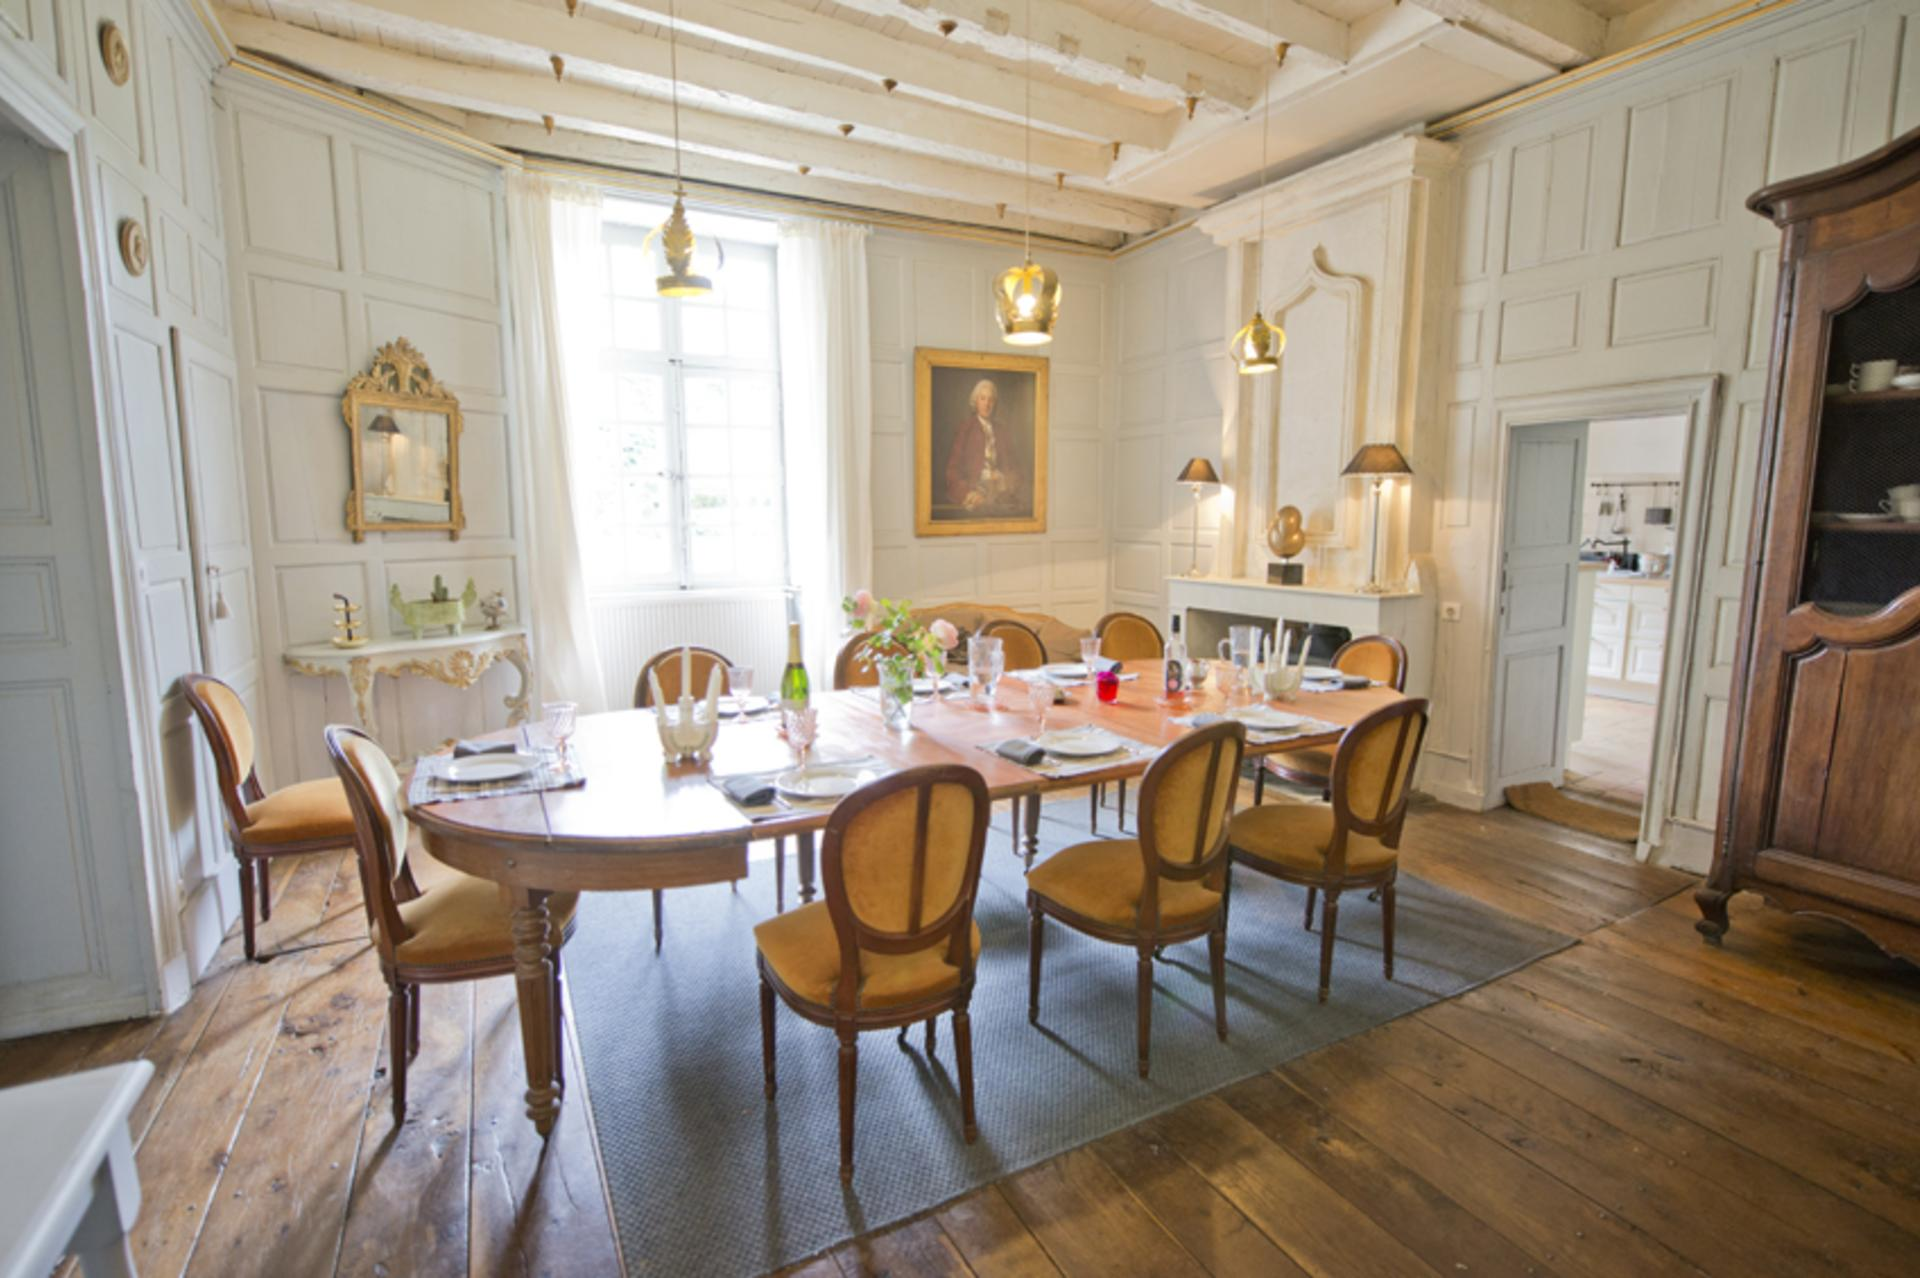 Dining Room, Chateau de Sers, Angouleme, Vendee Charente.